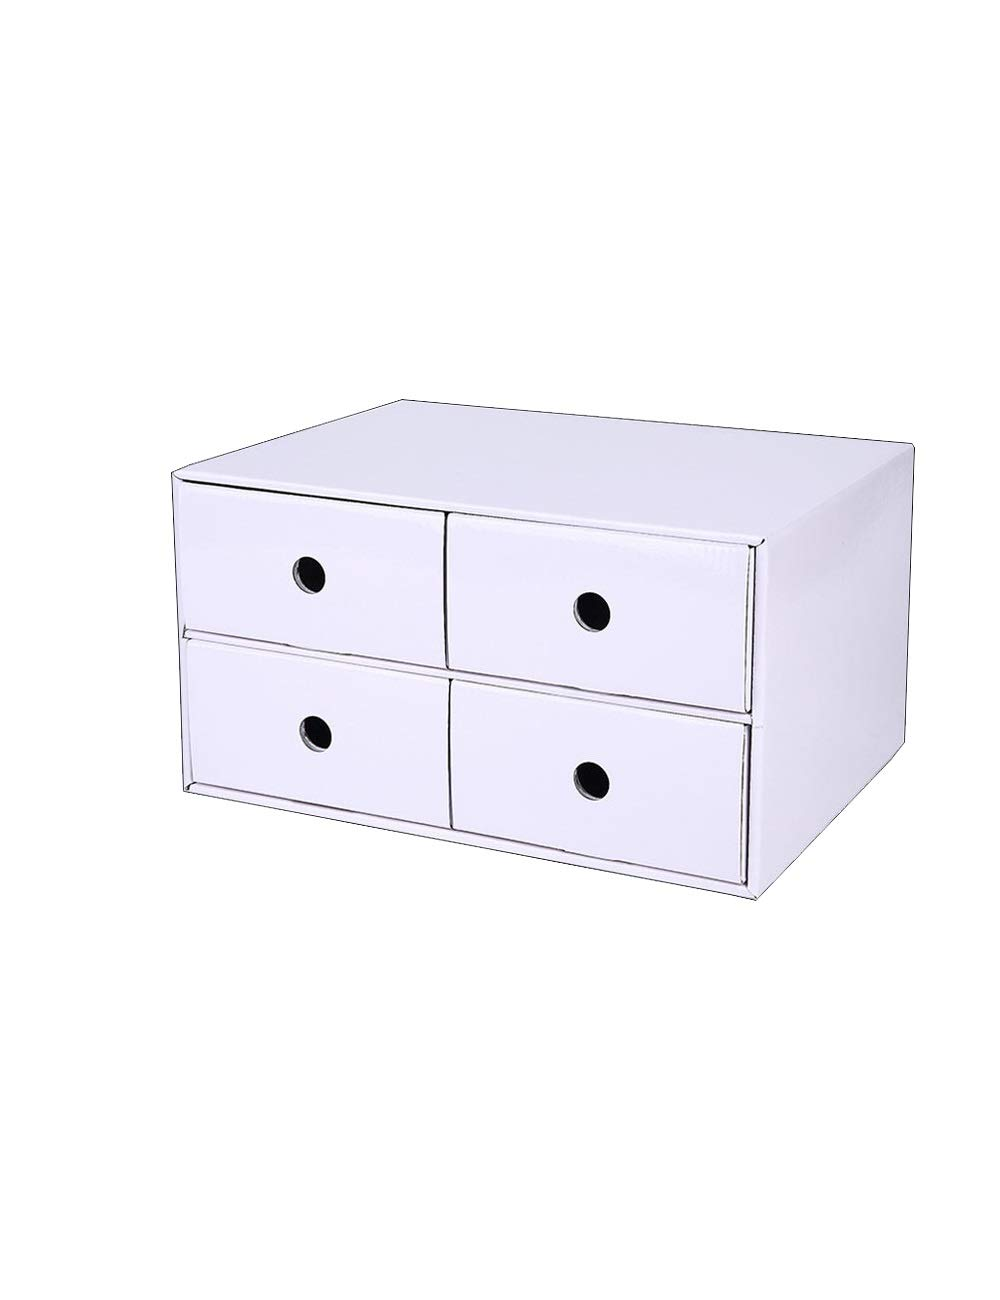 File Cabinet Office Desktop Drawer Type File Manager Stationery Cabinet 2 Layer A4 Paper Data Cabinet Storage Box Storage Filing cabinets